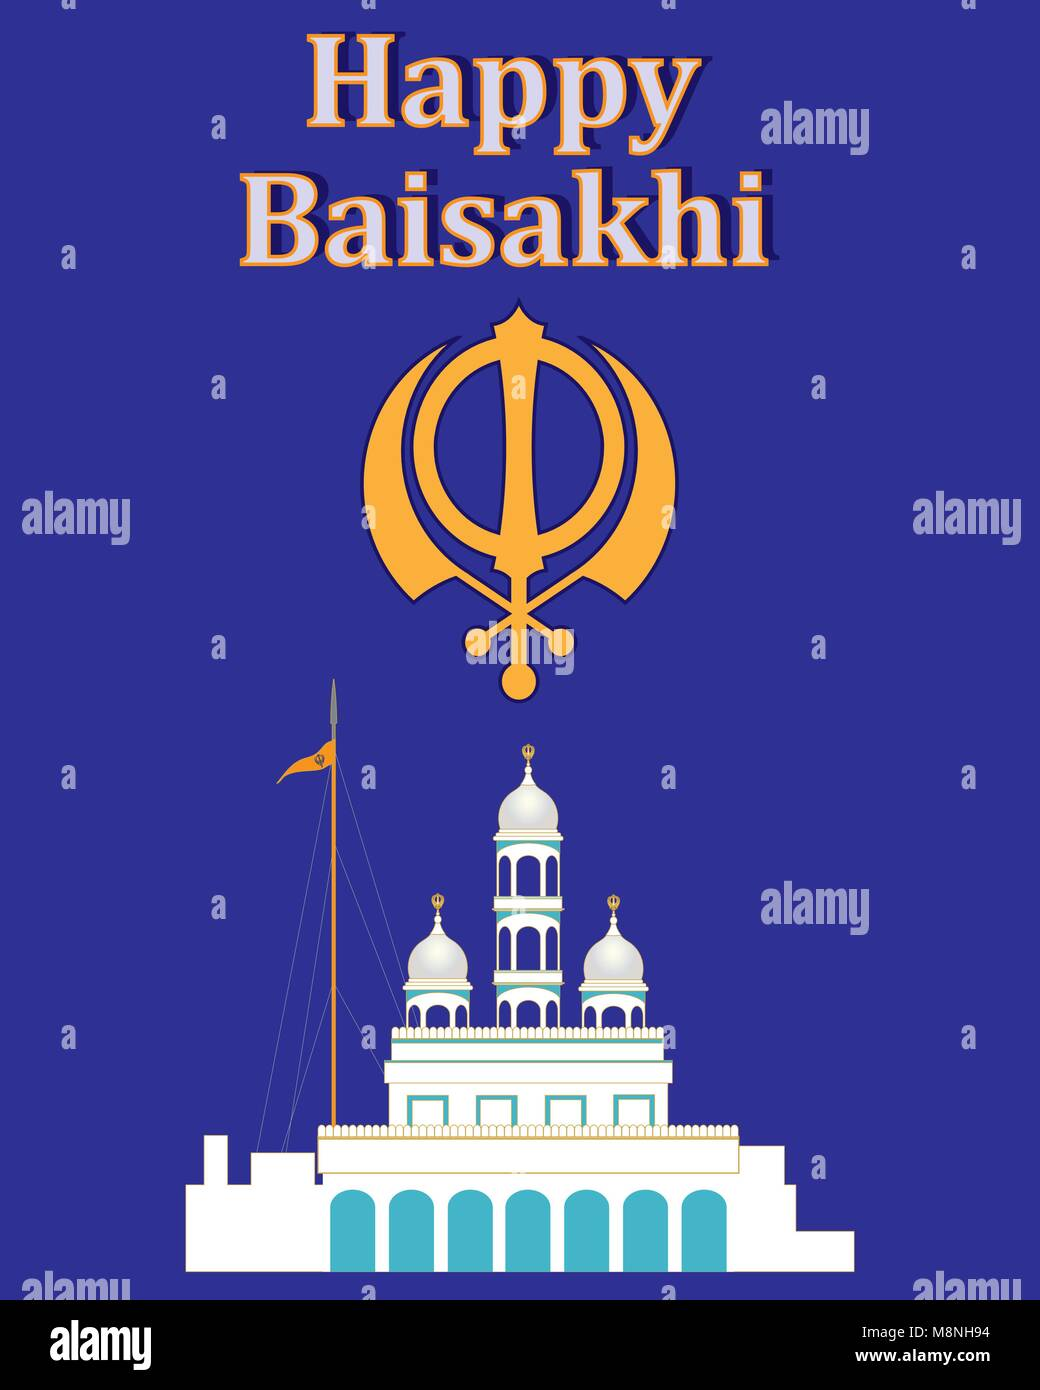 a vector illustration in eps 10 format of a greeting card celebrating the Sikh festival of Baisakhi with a white - Stock Vector